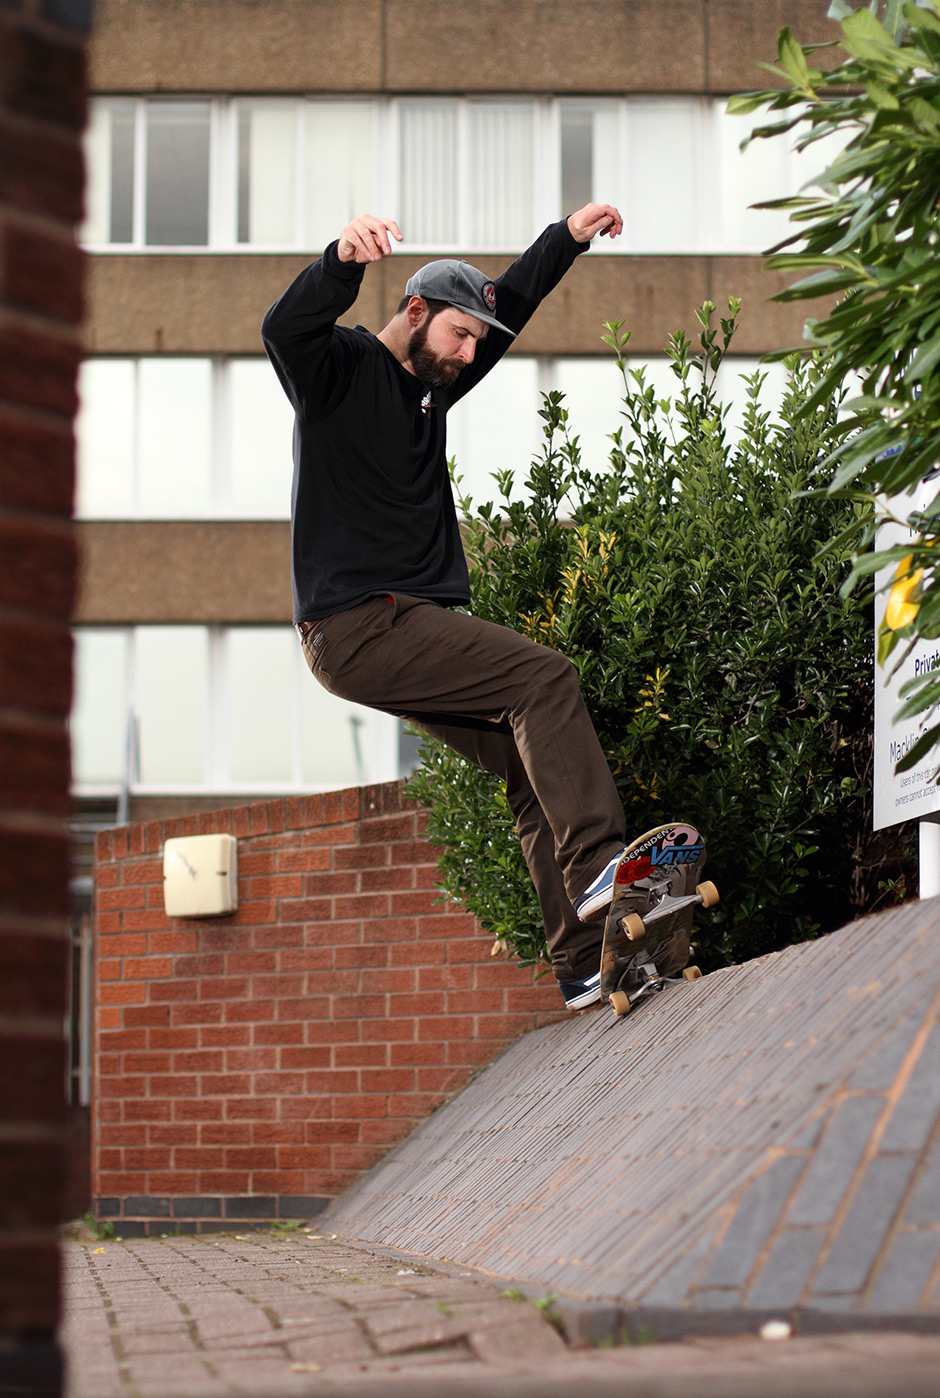 Darren Pearcy, Frontside 5-0, Derby. Photo: Tom Quigley